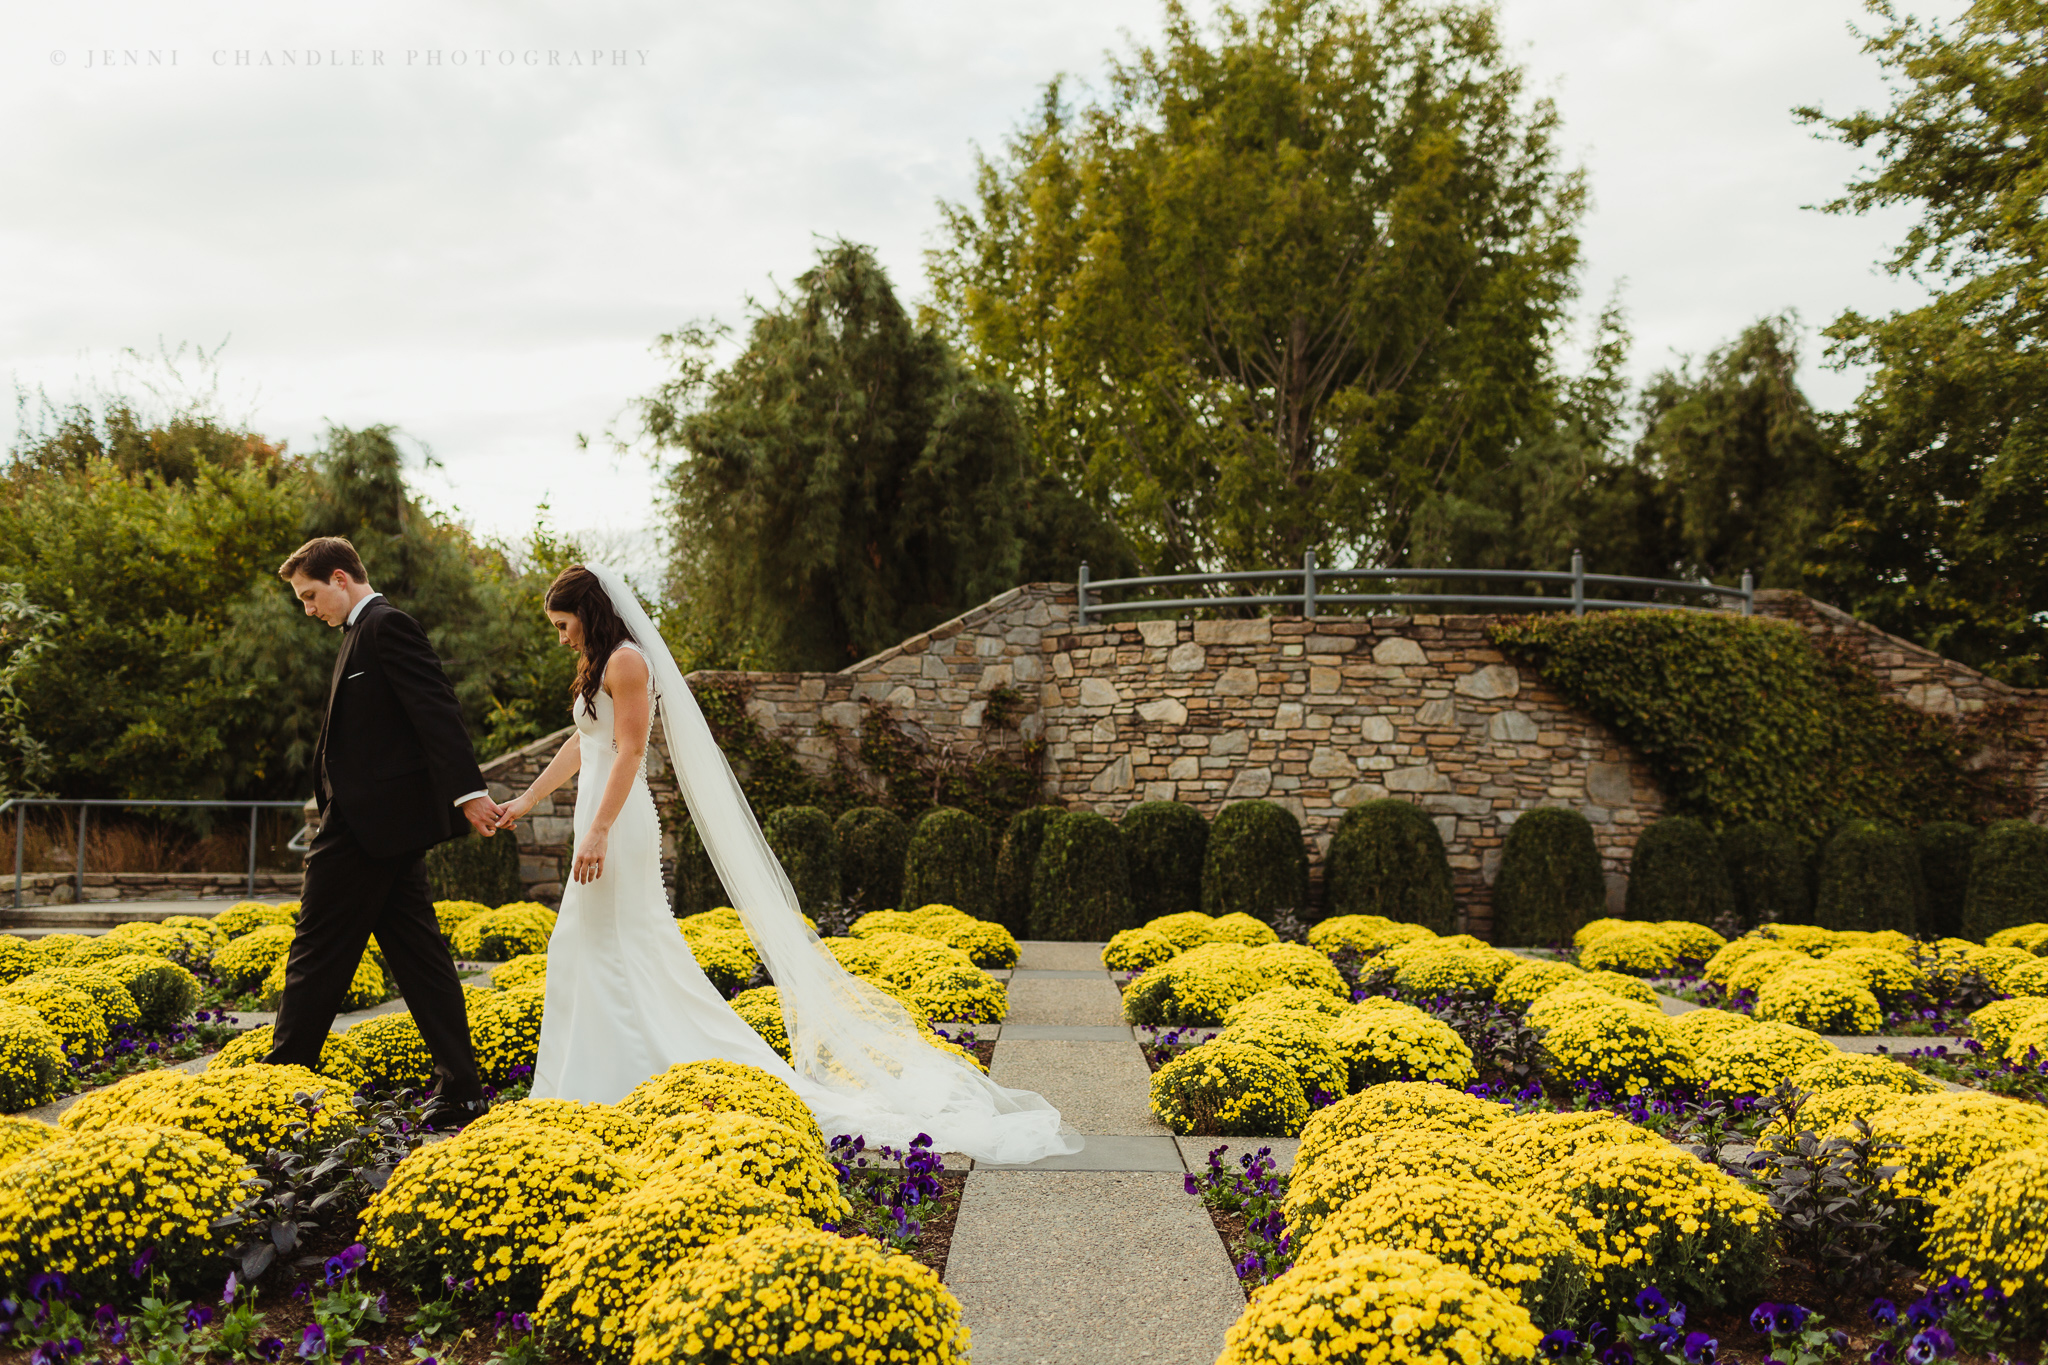 jennichandlerphotography_NCArboretum_2017FallWedding_WEB-49.jpg